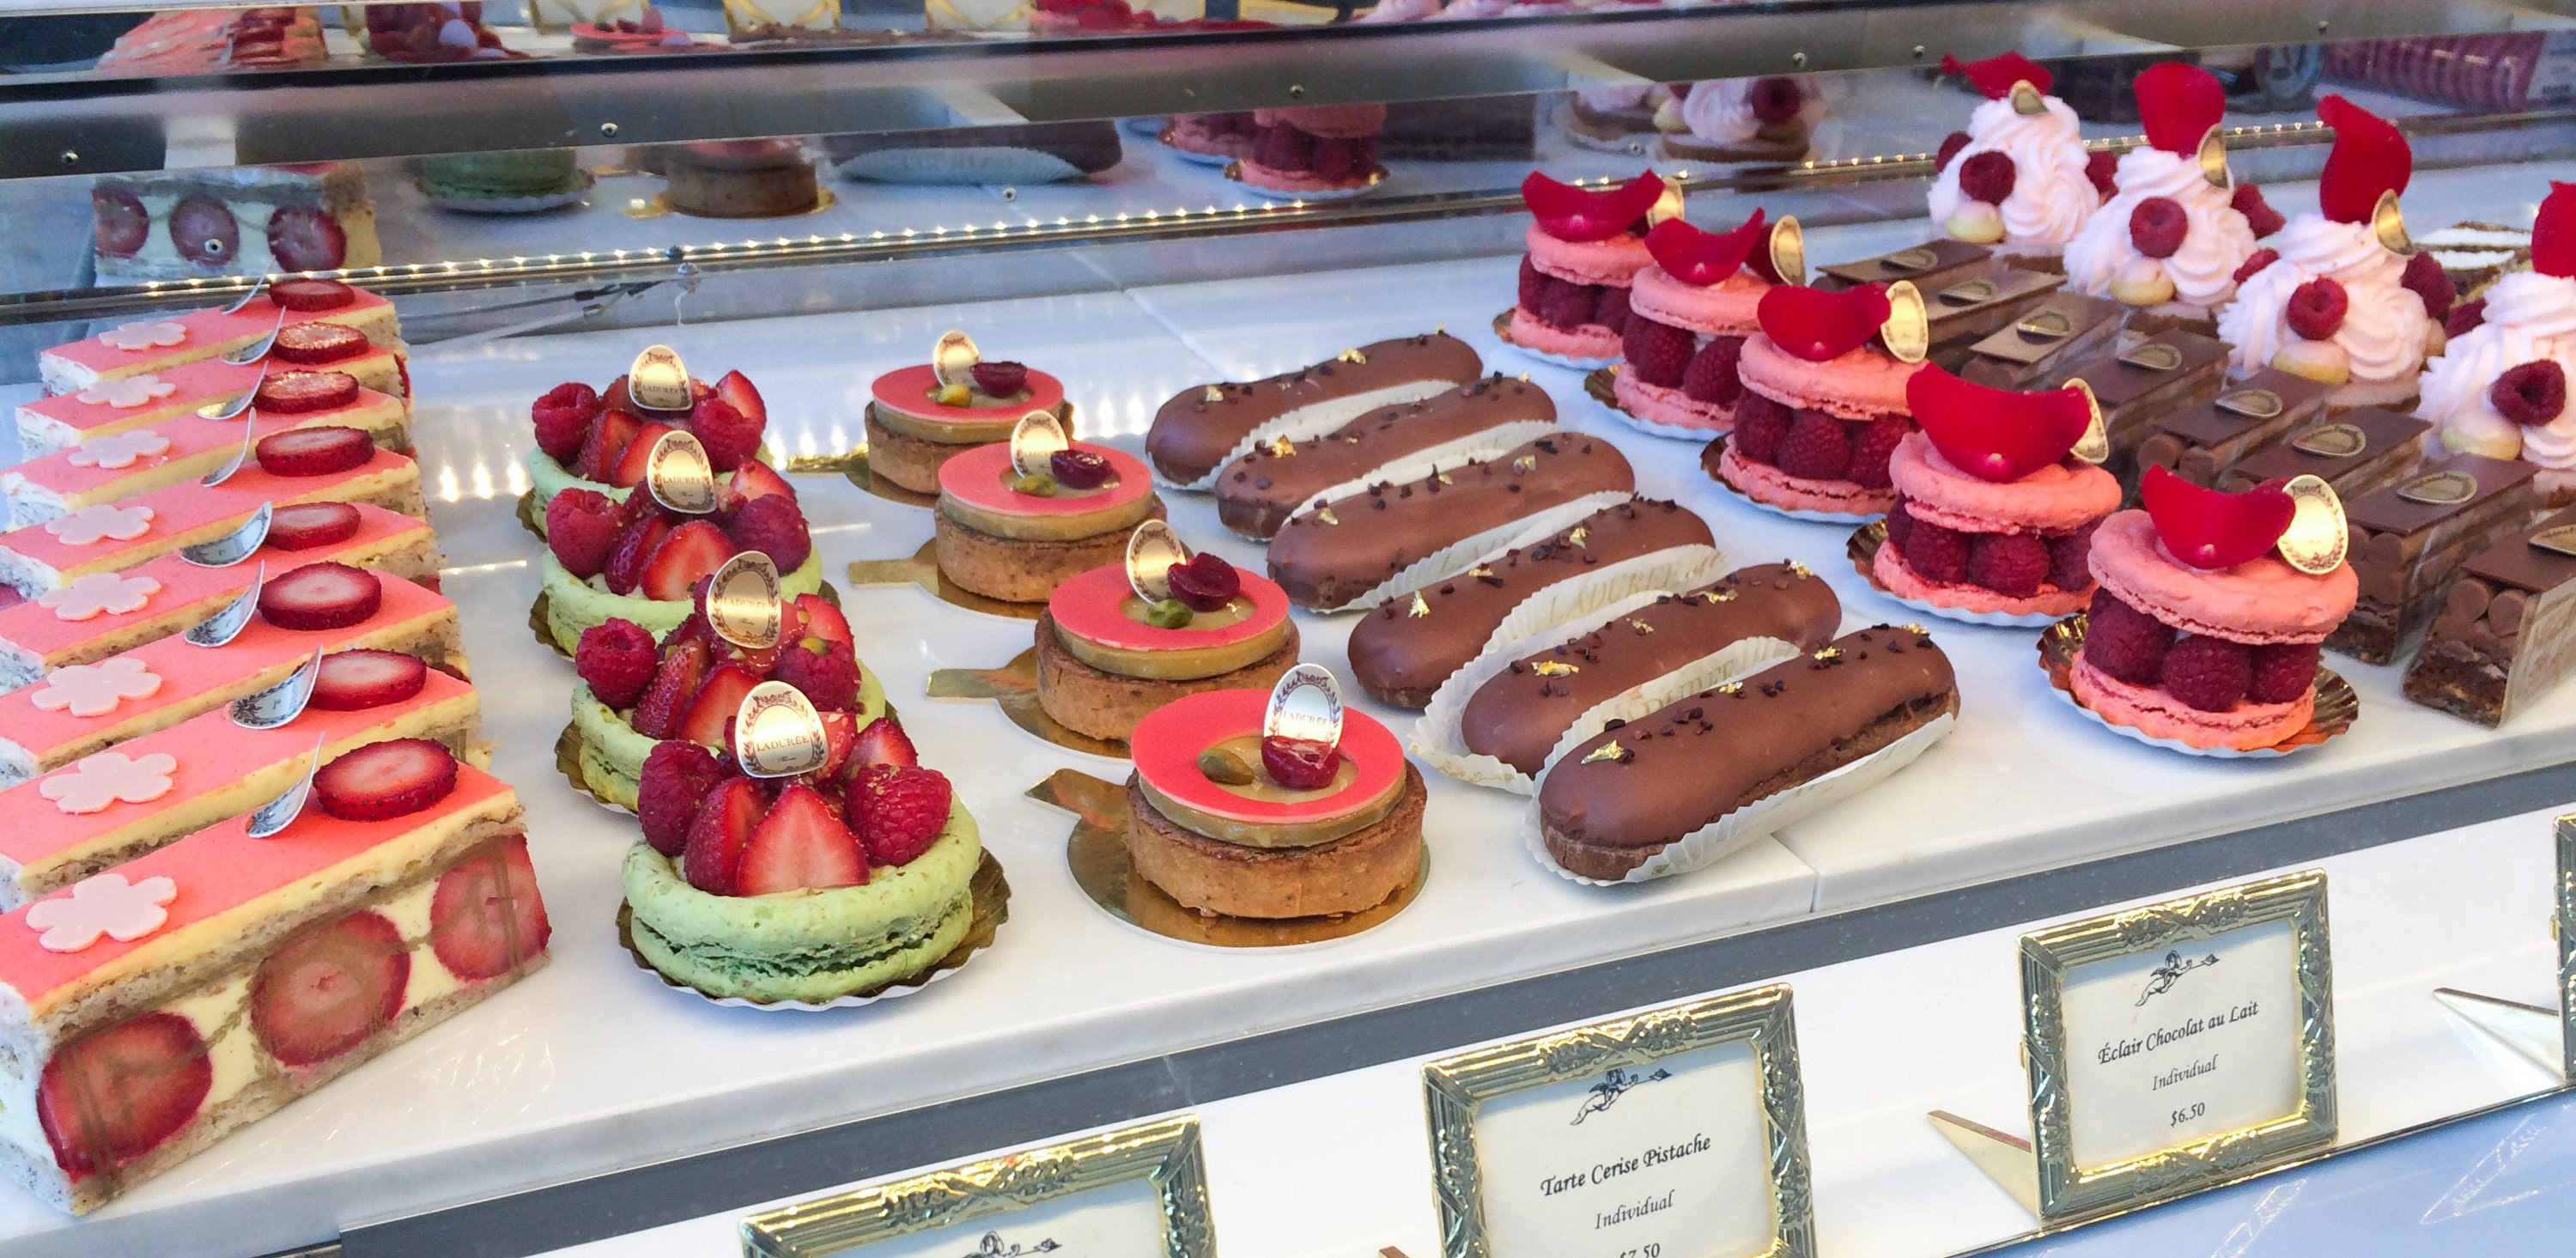 If you're looking to indulge in some sweet treats, here is where you can find the best desserts in Georgetown, Washington DC!